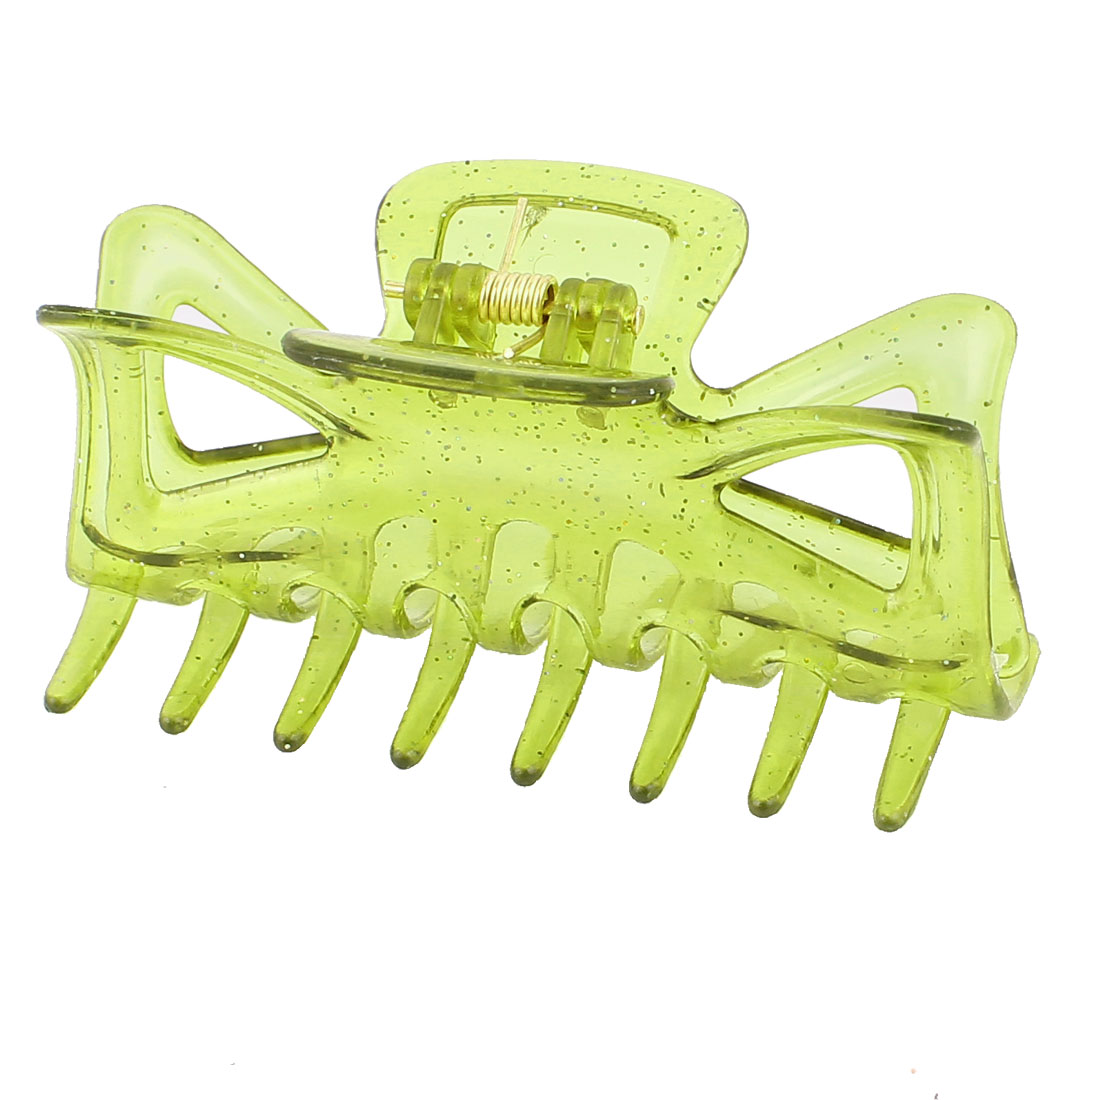 Plastic Spring Loaded Glitter Powder Teeth Design Hairpin Hair Clip Claw for Lady Clear Green